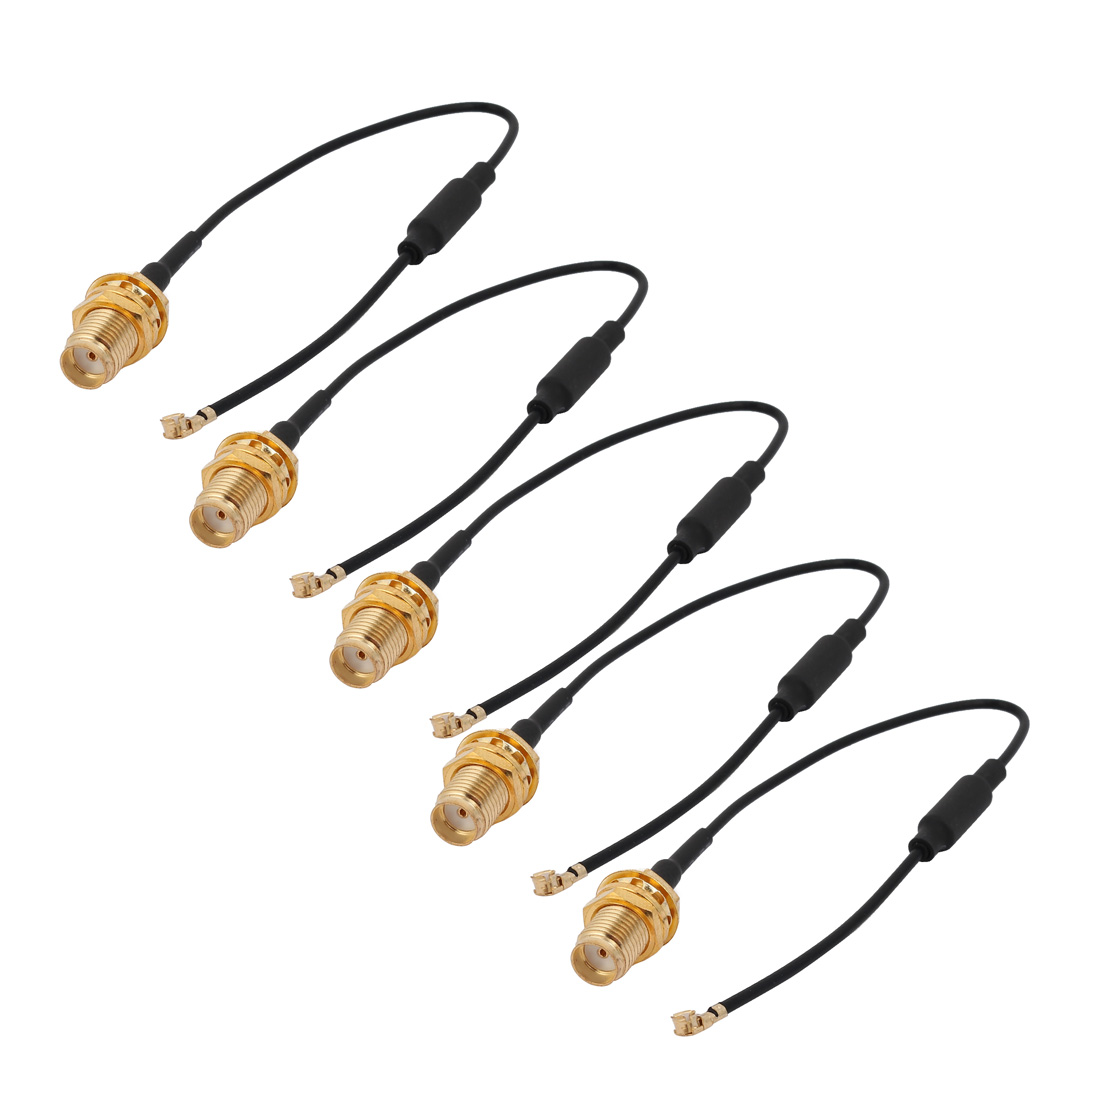 5 Pcs RF1.37 IPEX 1 to SMA Female Connector Pigtail Cable Antenna 15cm Length